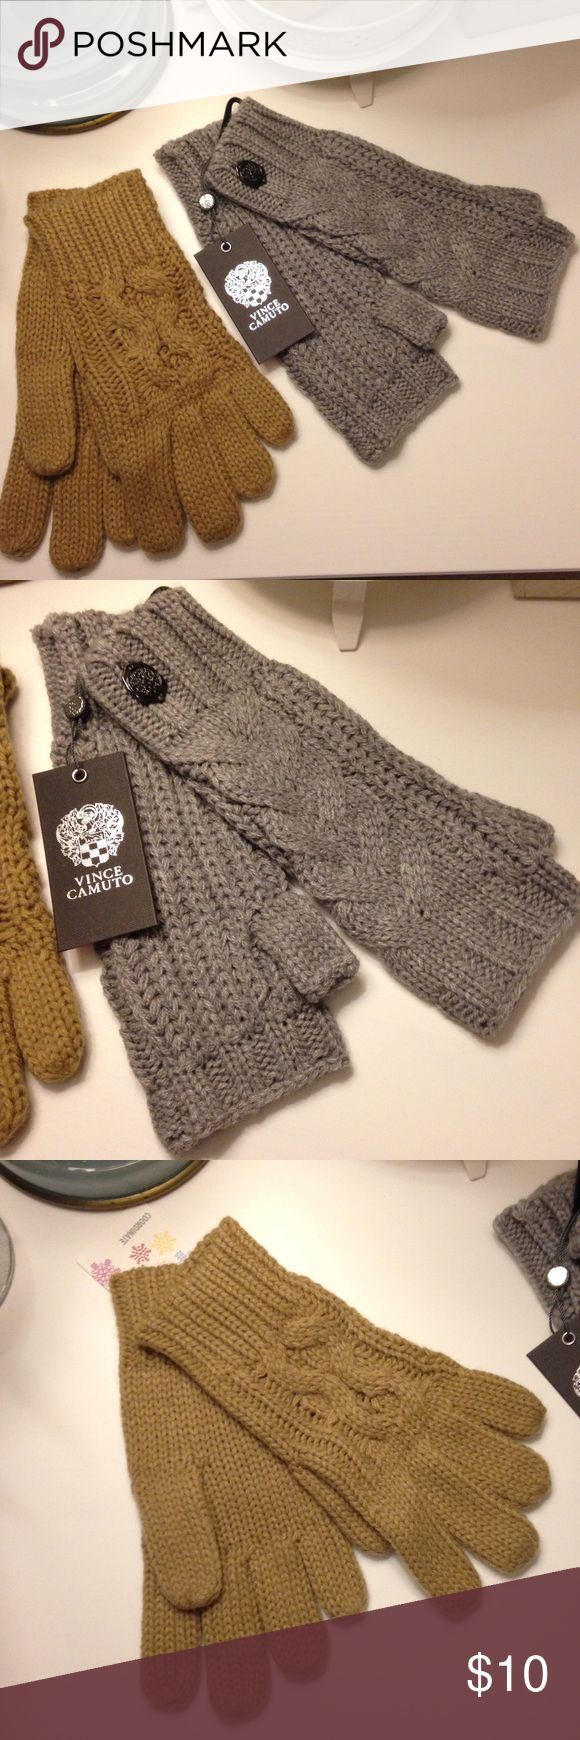 Vince Camuto Fingerless Gloves & Bonus Pair! Two pairs of cable knit gloves. The light grey are Vince camuto, new with tags, mid arm, & fingerless. The camel or tan colored are also new with tags, not Vince camuto, full finger, mid wrist. Both very comfy & cute but I have tons of gloves! Vince Camuto Accessories Gloves & Mittens